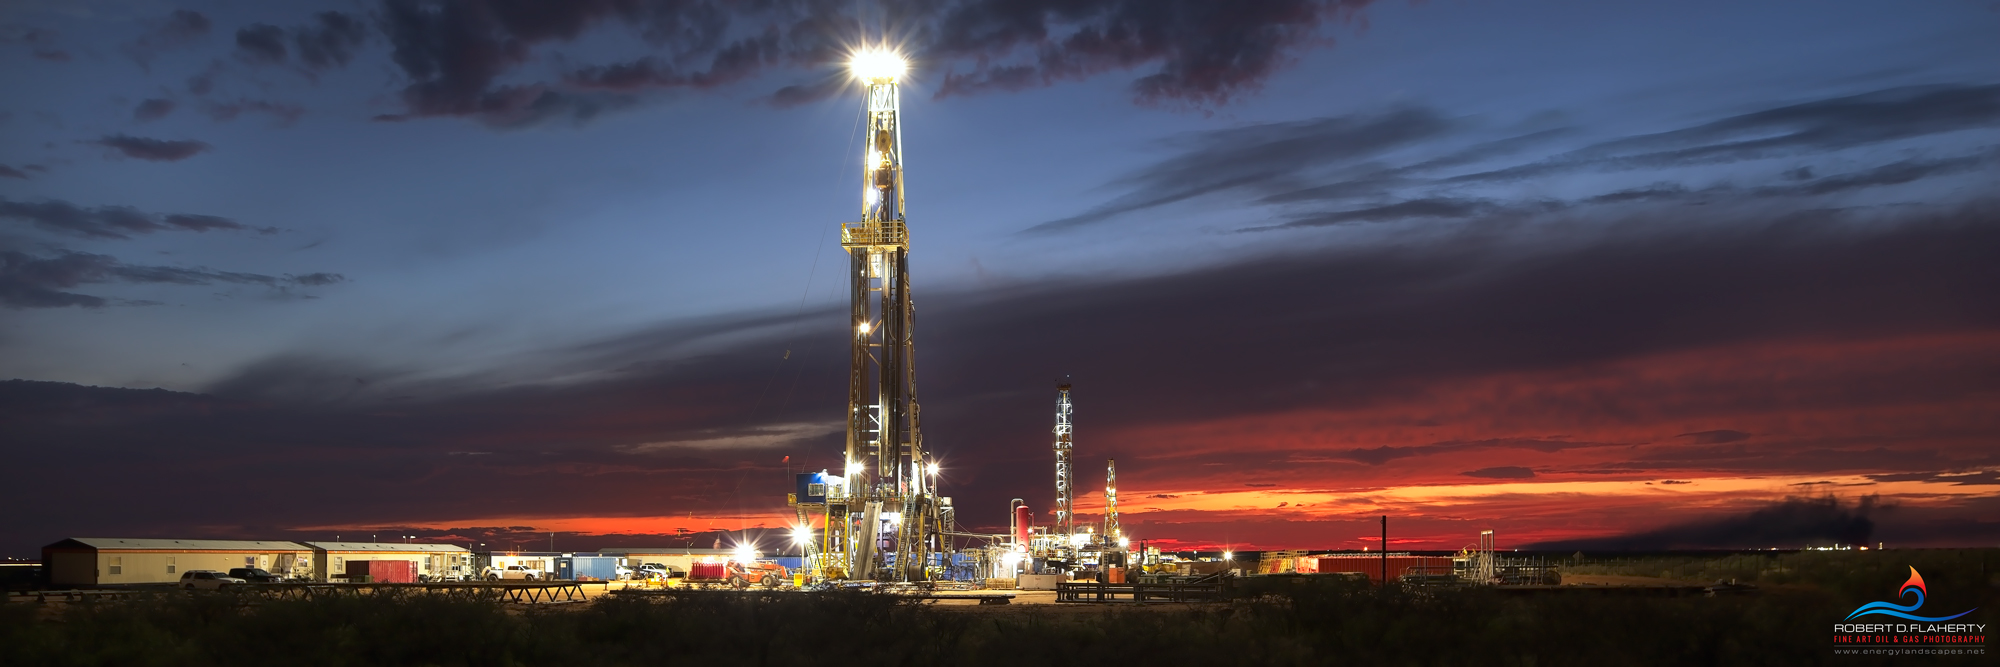 Battle Axe Sunset features three drilling rigs drilling nine long lateral wells on the first day of October 2019. The image was...